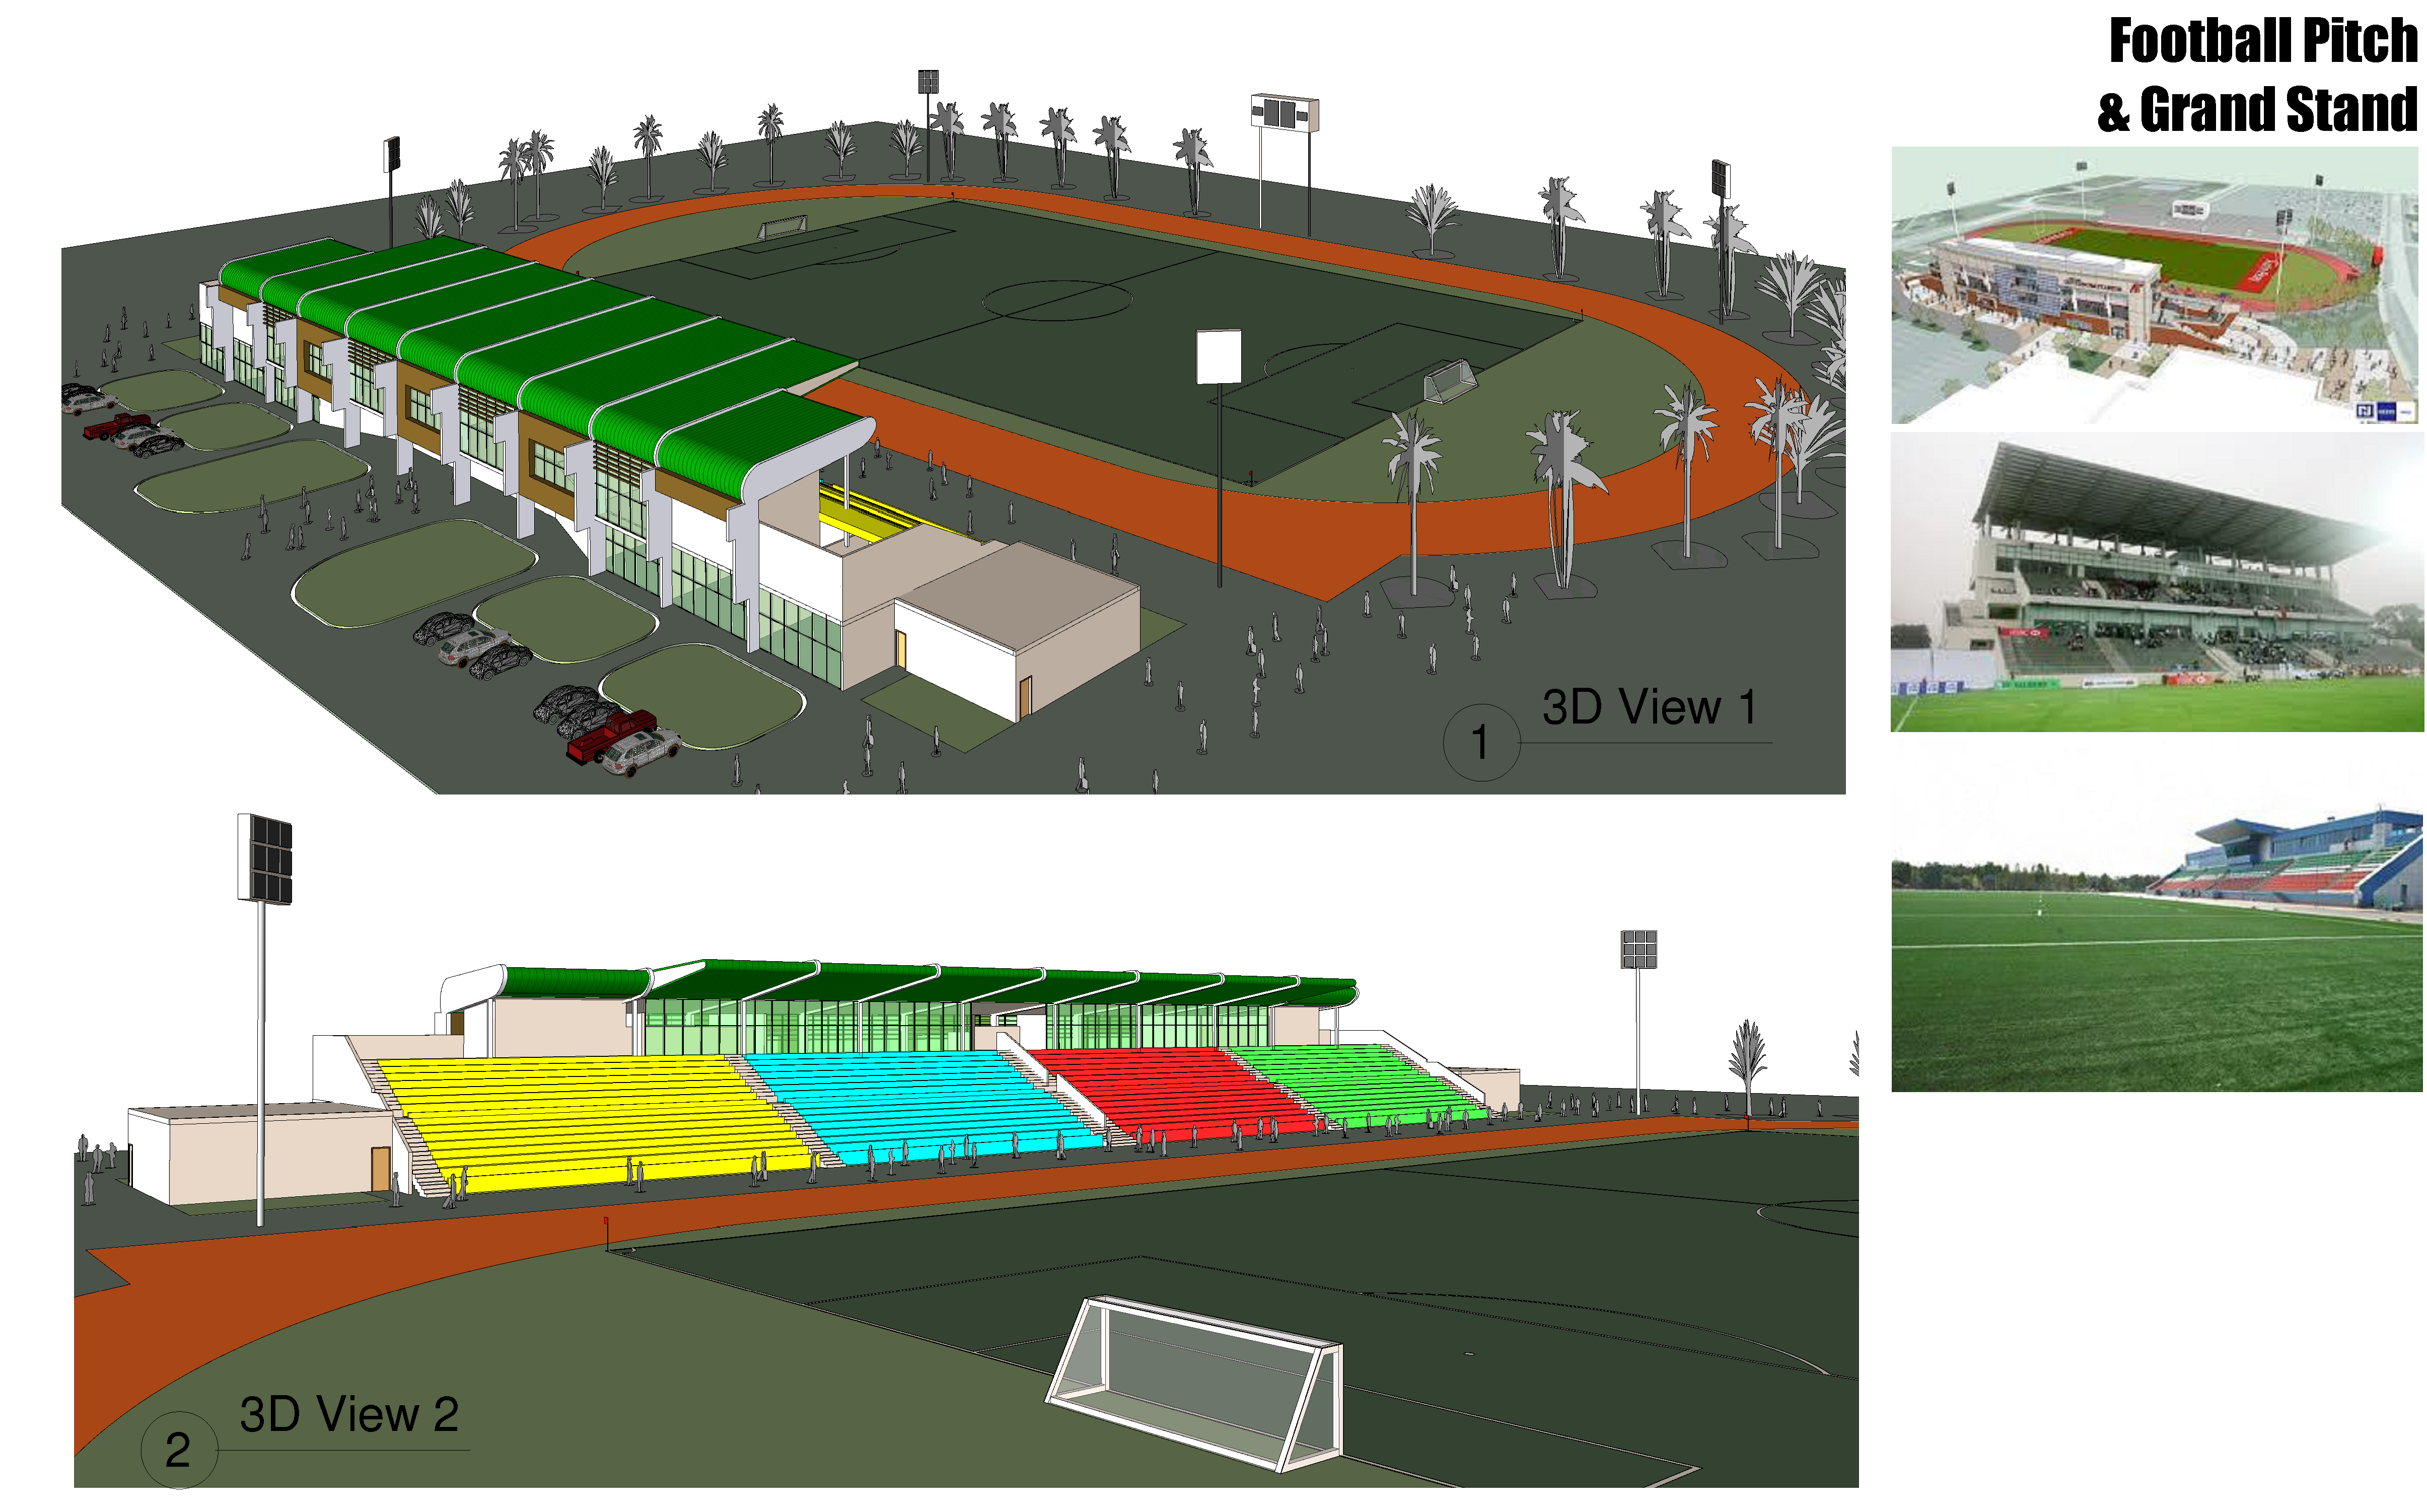 Football Pitch & Grand Stand